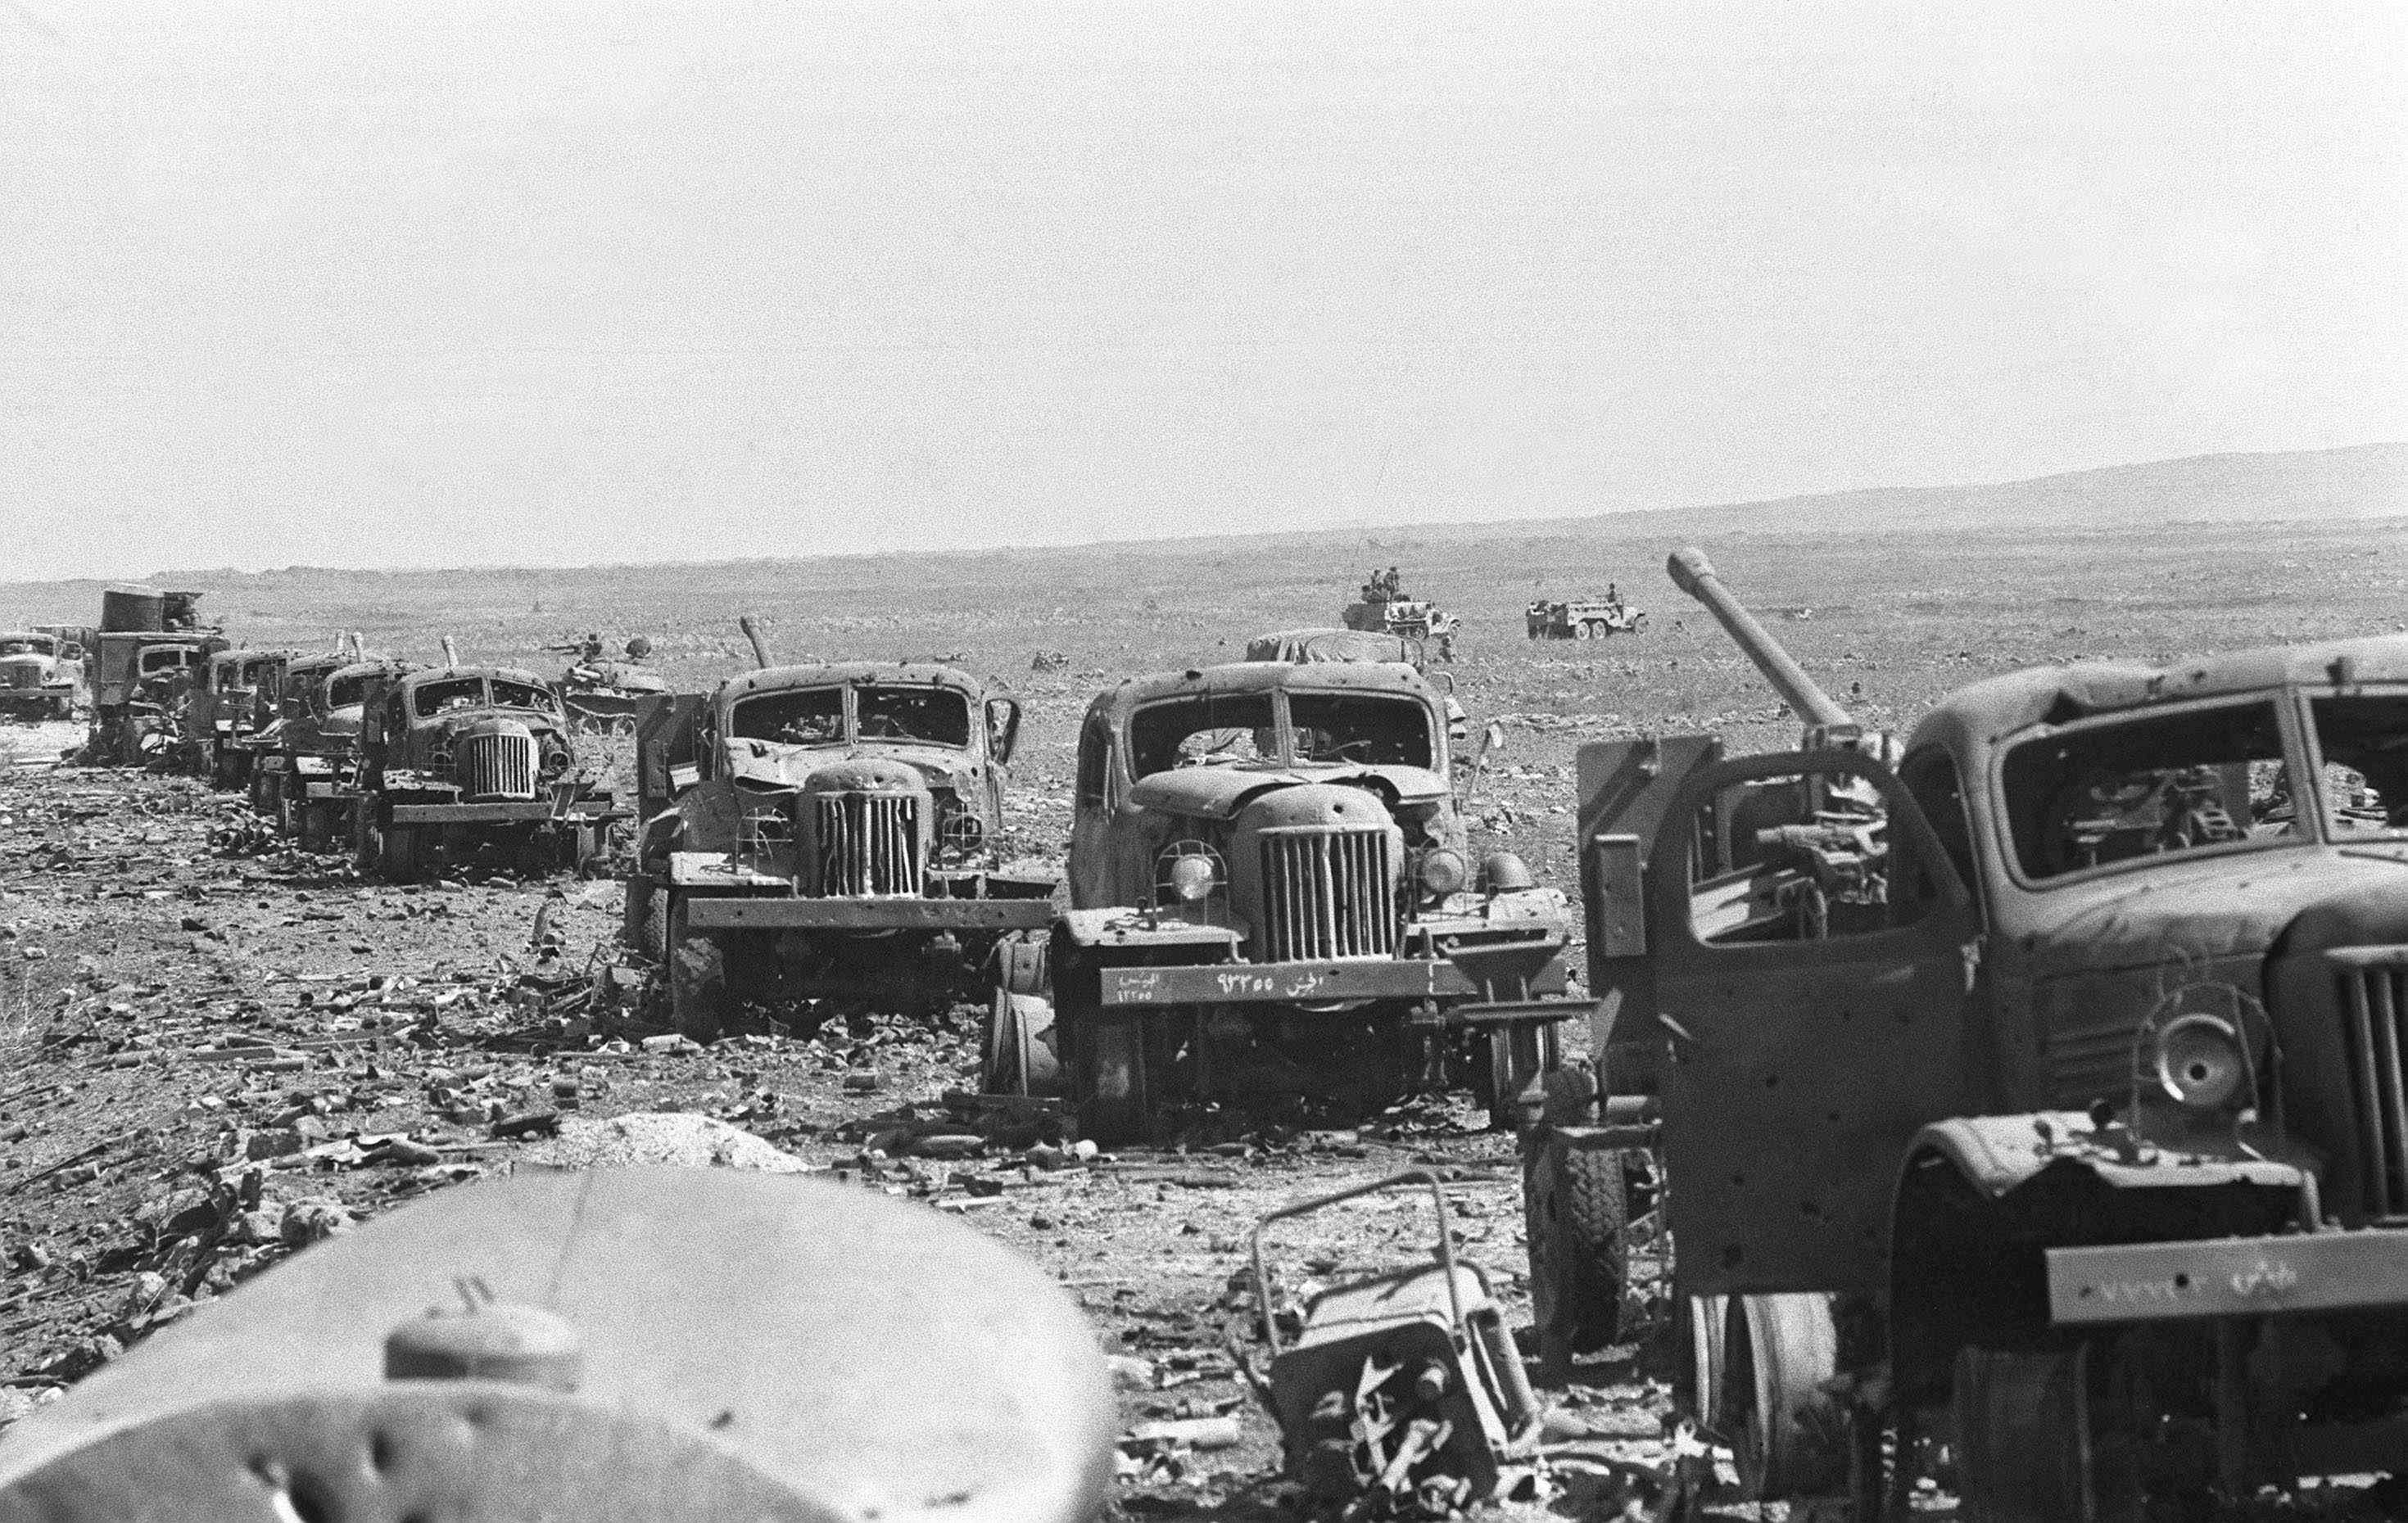 Destroyed Syrian convoy on the Golan Heights, 1973.